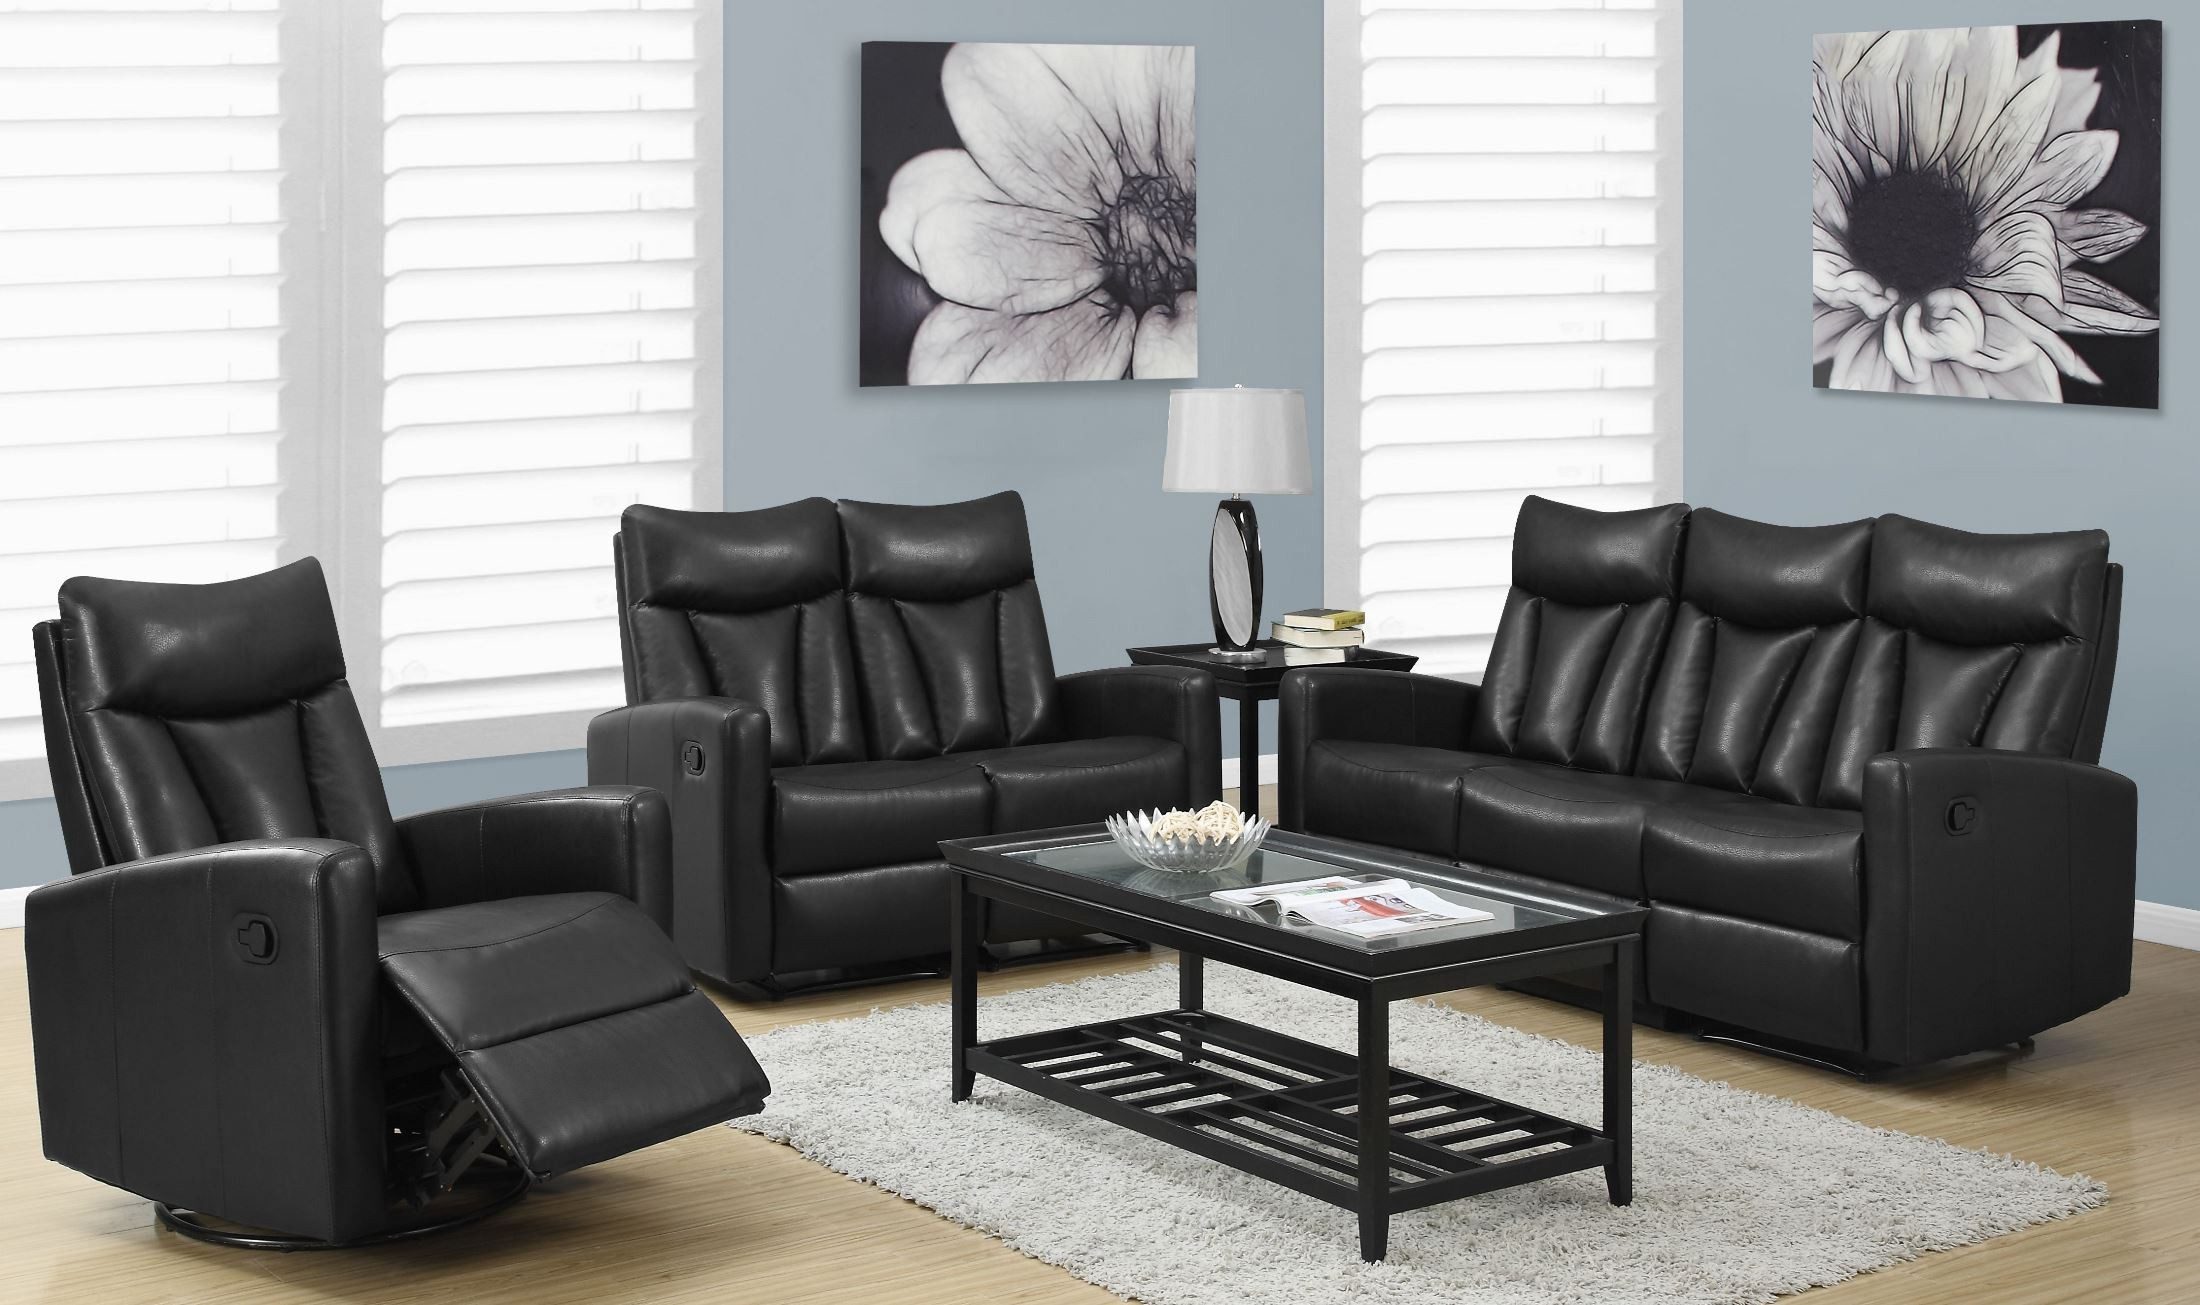 Leather Reclining Living Room Furniture Sets